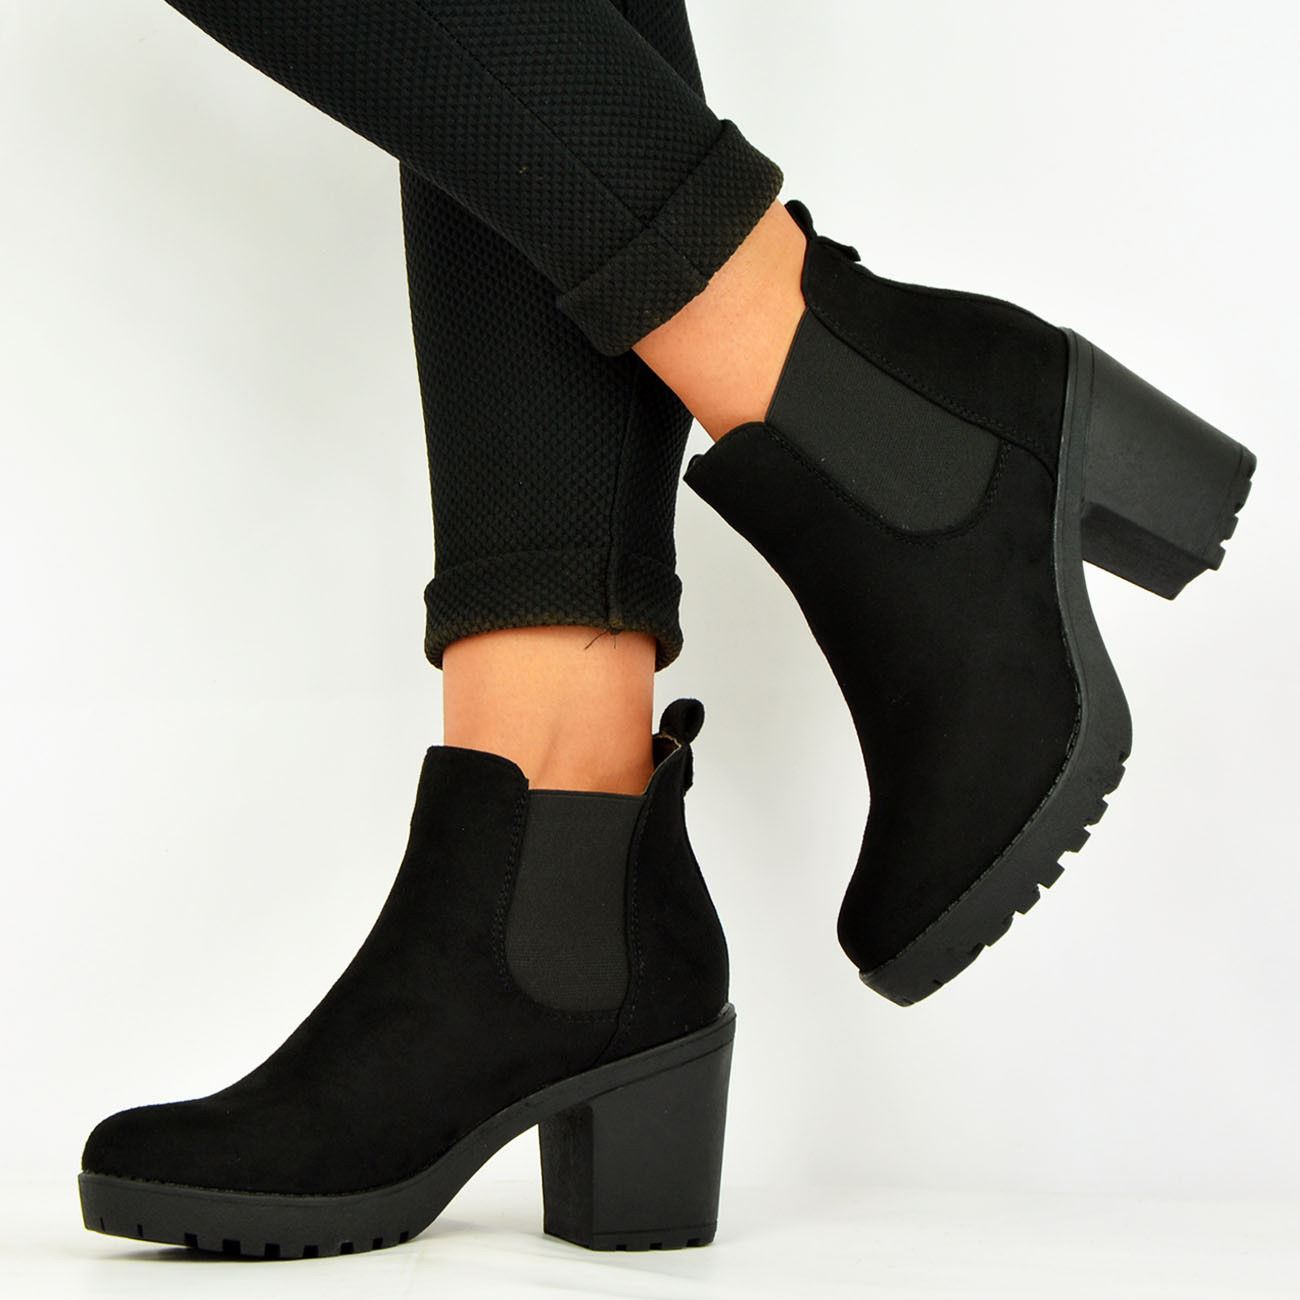 LADIES-WOMENS-ANKLE-CHELSEA-BOOTS-CHUNKY-BLOCK-HEELS-PLATFORM-SHOES-SIZE-UK-3-8 thumbnail 9